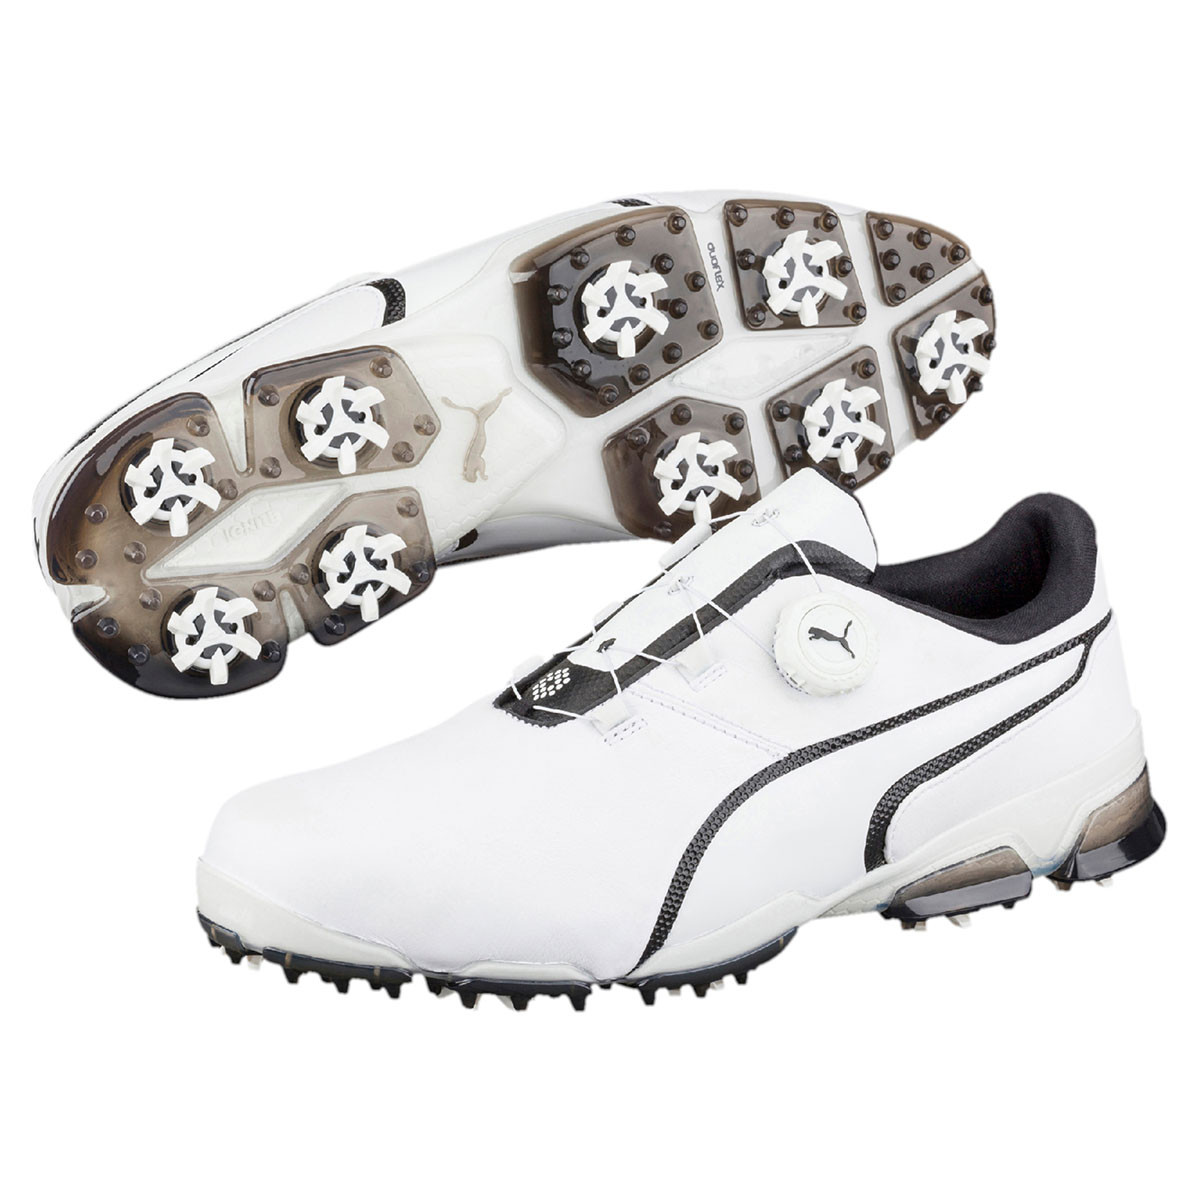 Puma Golf Mens Waterproof TitanTour Ignite Disc Golf Shoes a2125381b